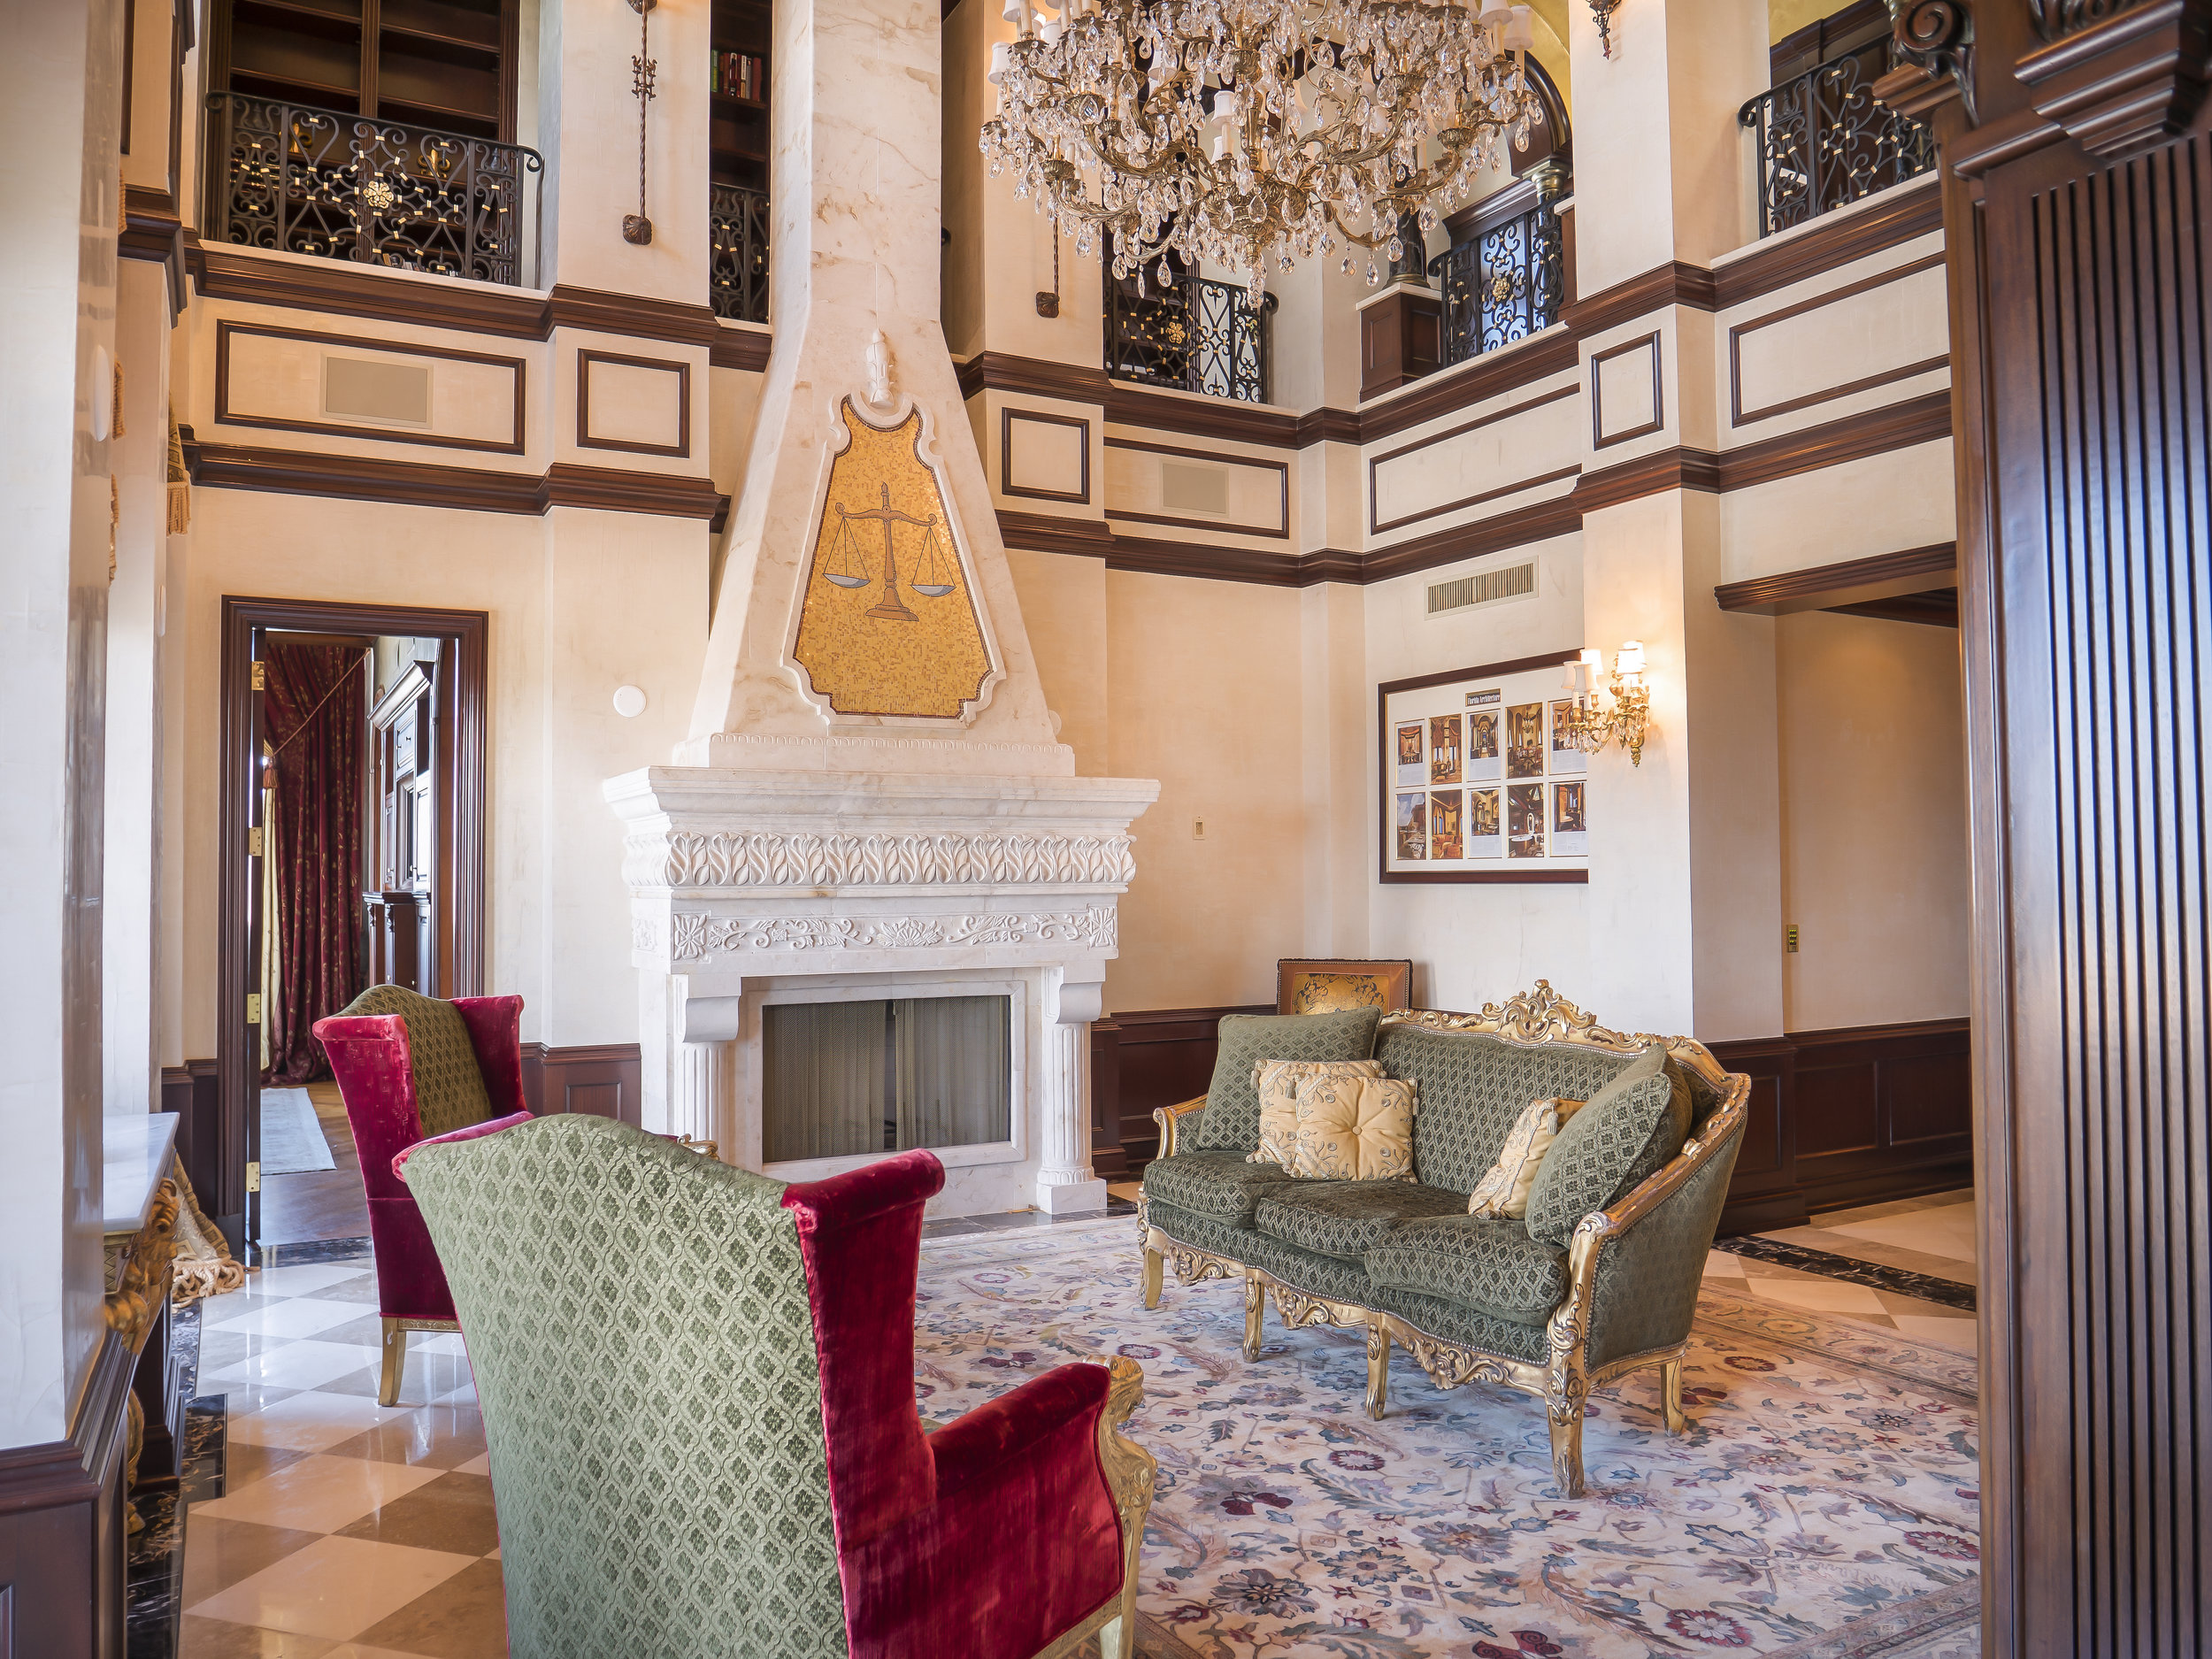 Check Out This Jeff Howard-Designed Italian Renaissance Penthouse in Coral Gables Asking $6.99 Million